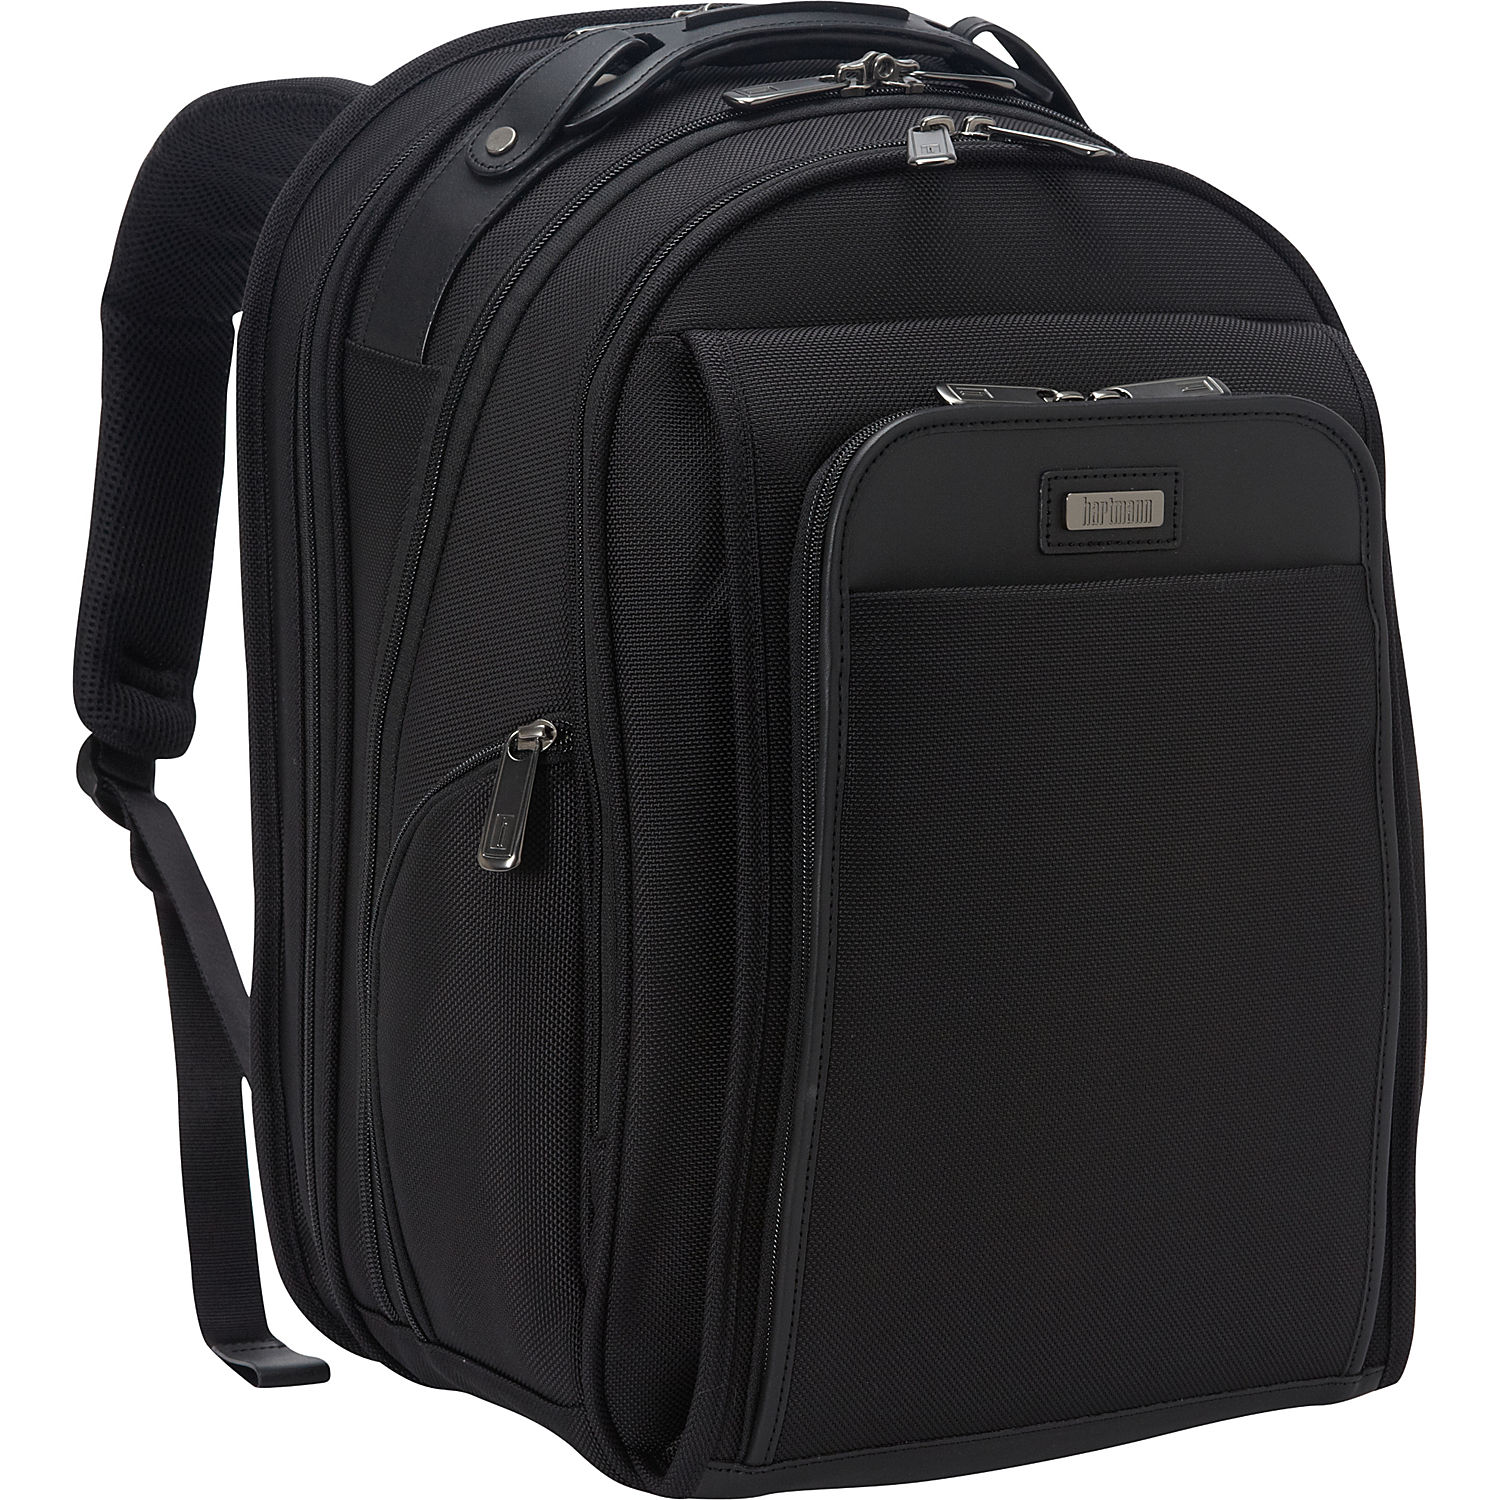 Hartmann Luggage Three Compartment Business Backpack